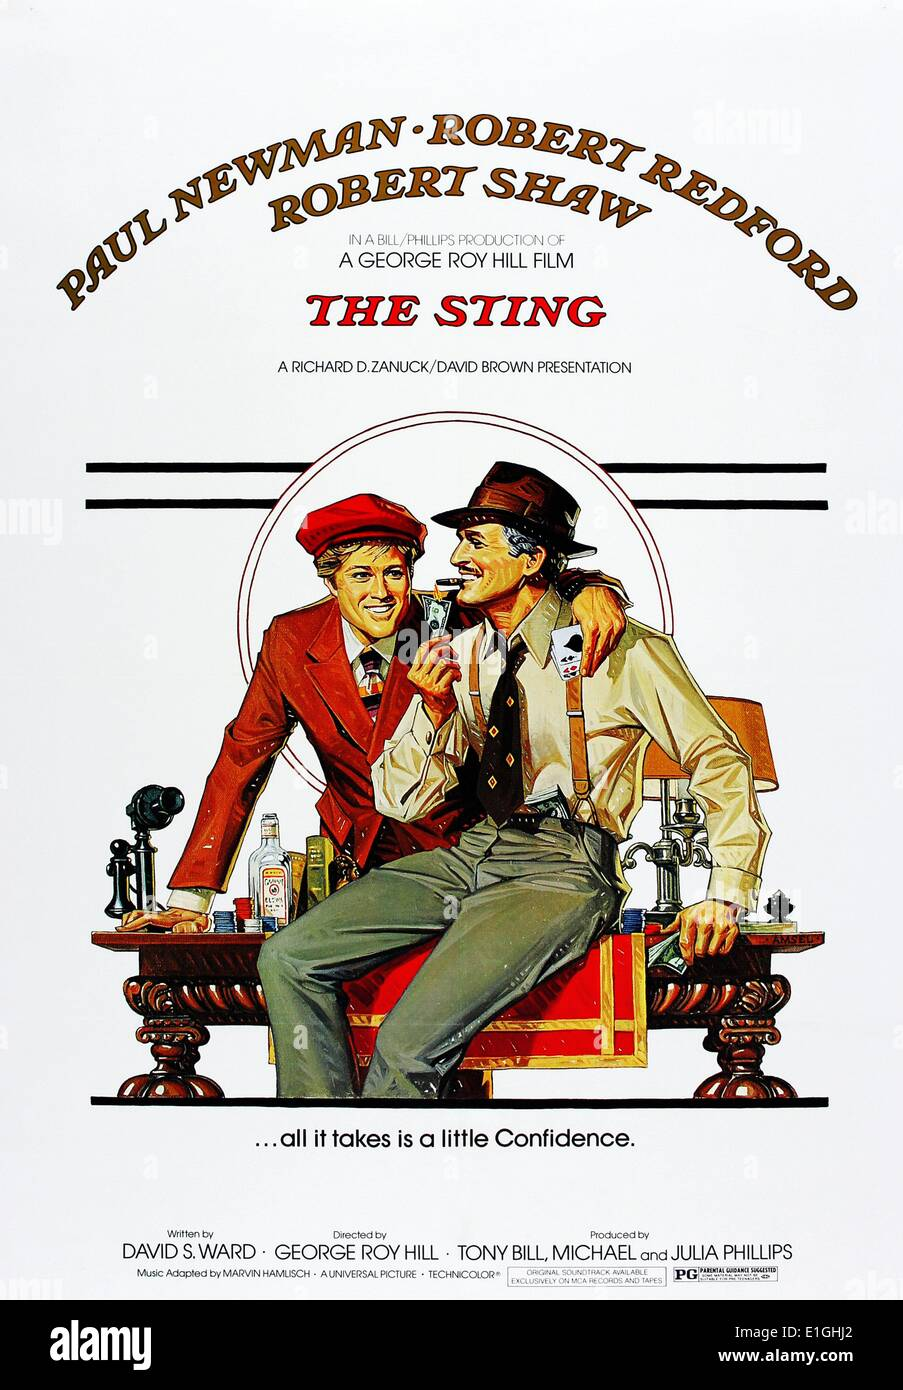 'The Sting' a 1973 American caper film starring Paul Newman, Robert Redford and Robert Shaw. - Stock Image